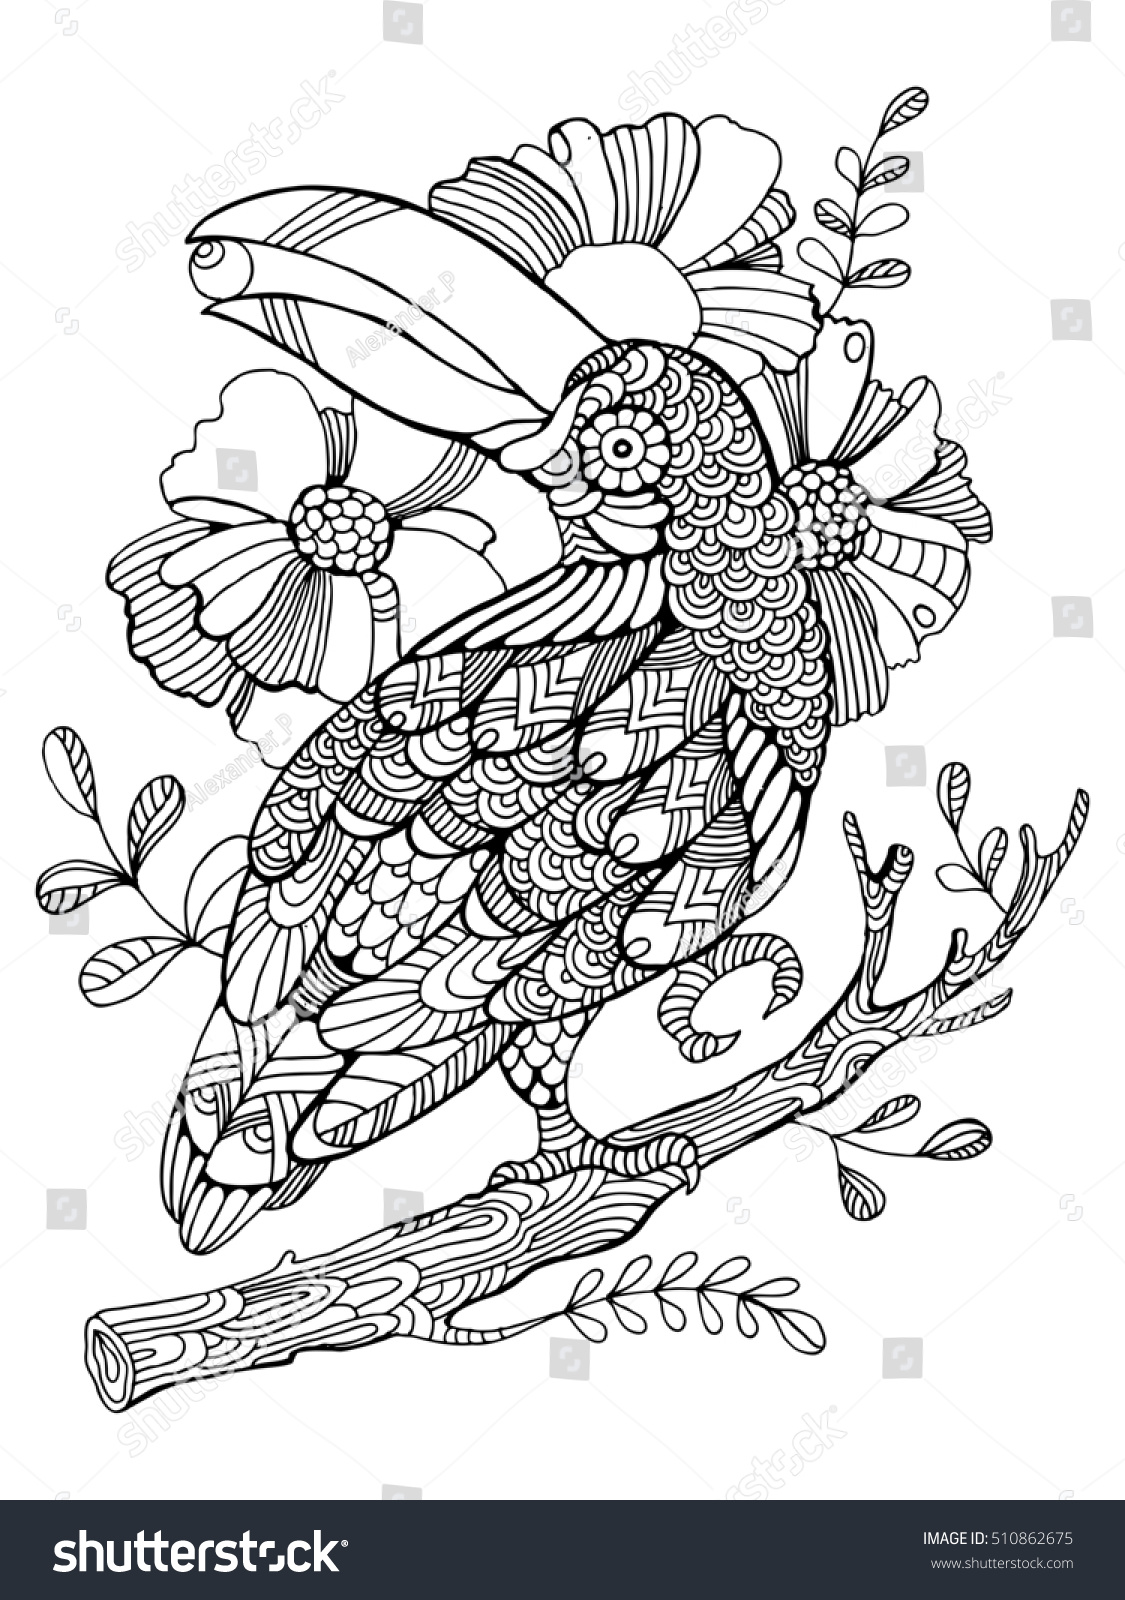 Toucan Bird Coloring Book Adults Raster Stockillustration 510862675 ...